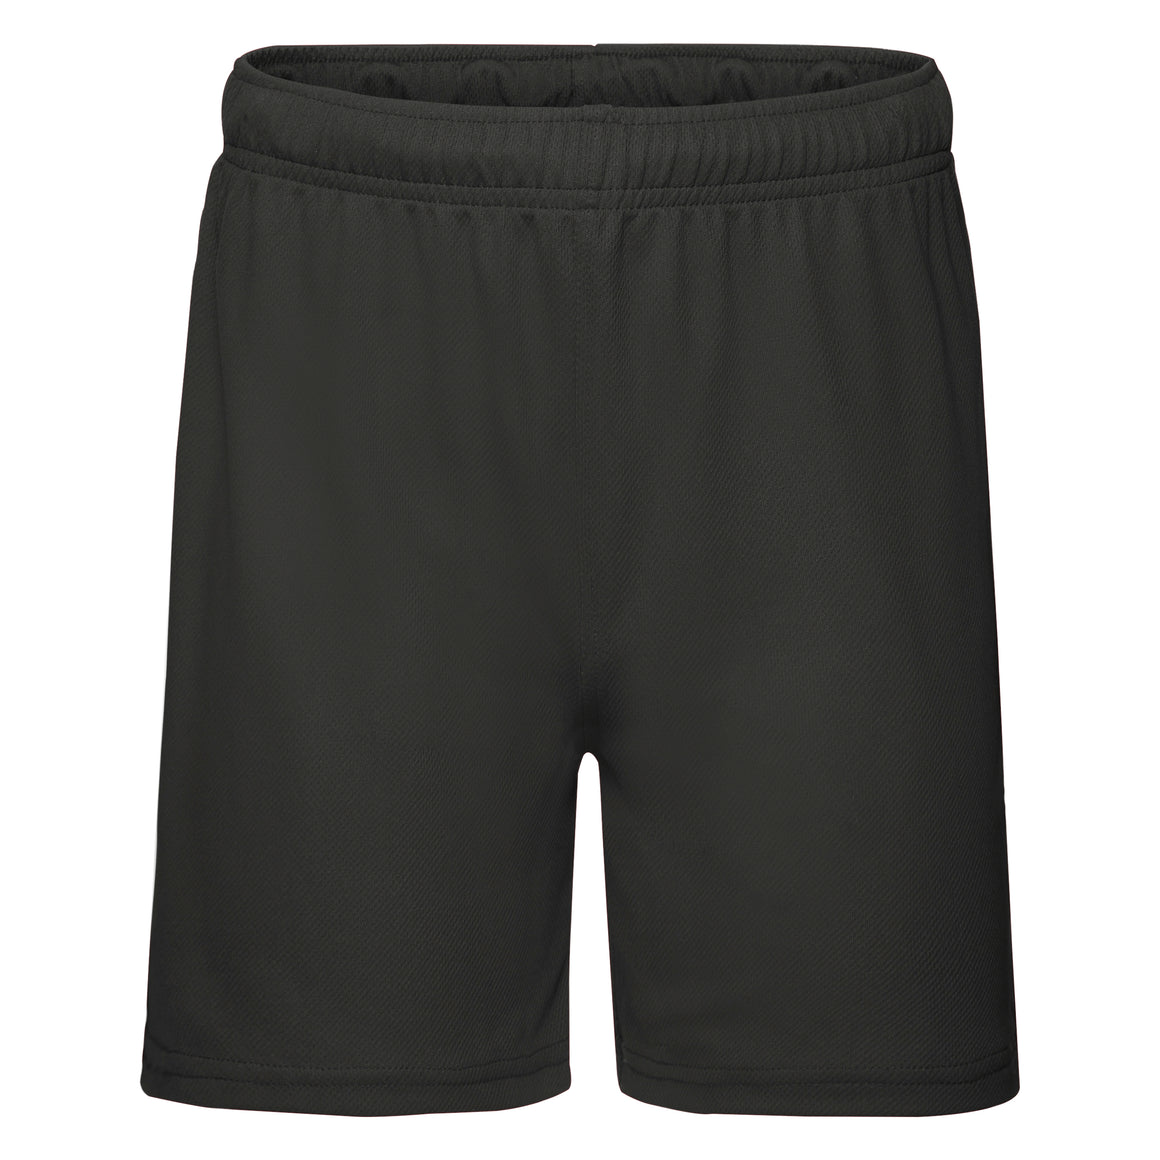 Yeadon Westfield Junior School PE Shorts